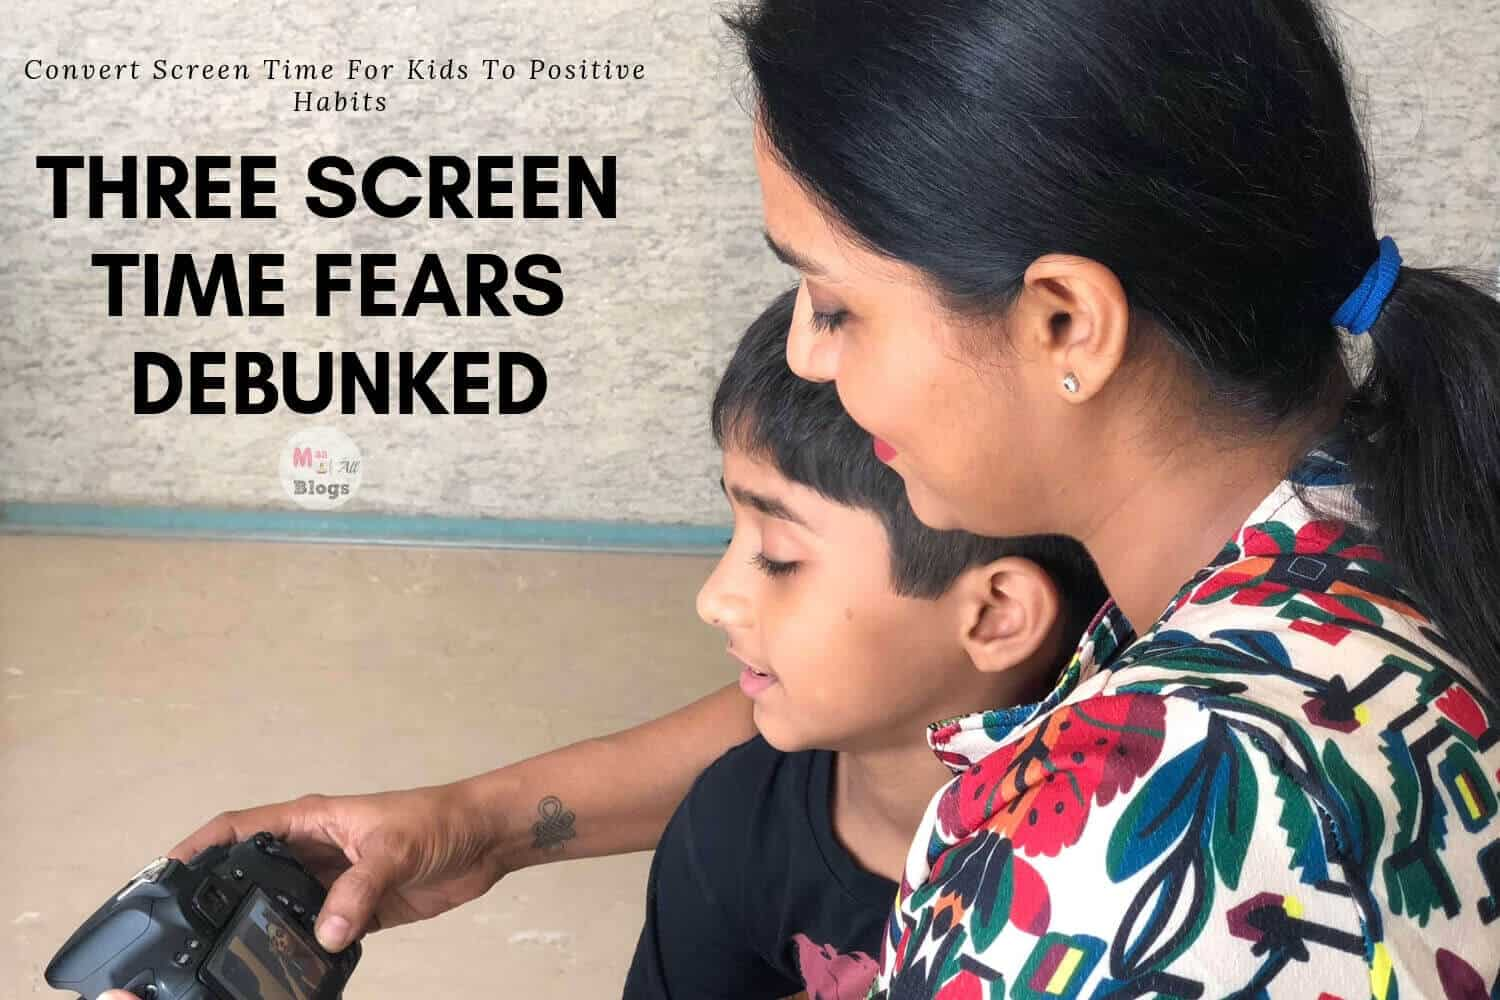 Convert Screen Time For Kids To Positive Habits Three Screen Time Fears Debunked